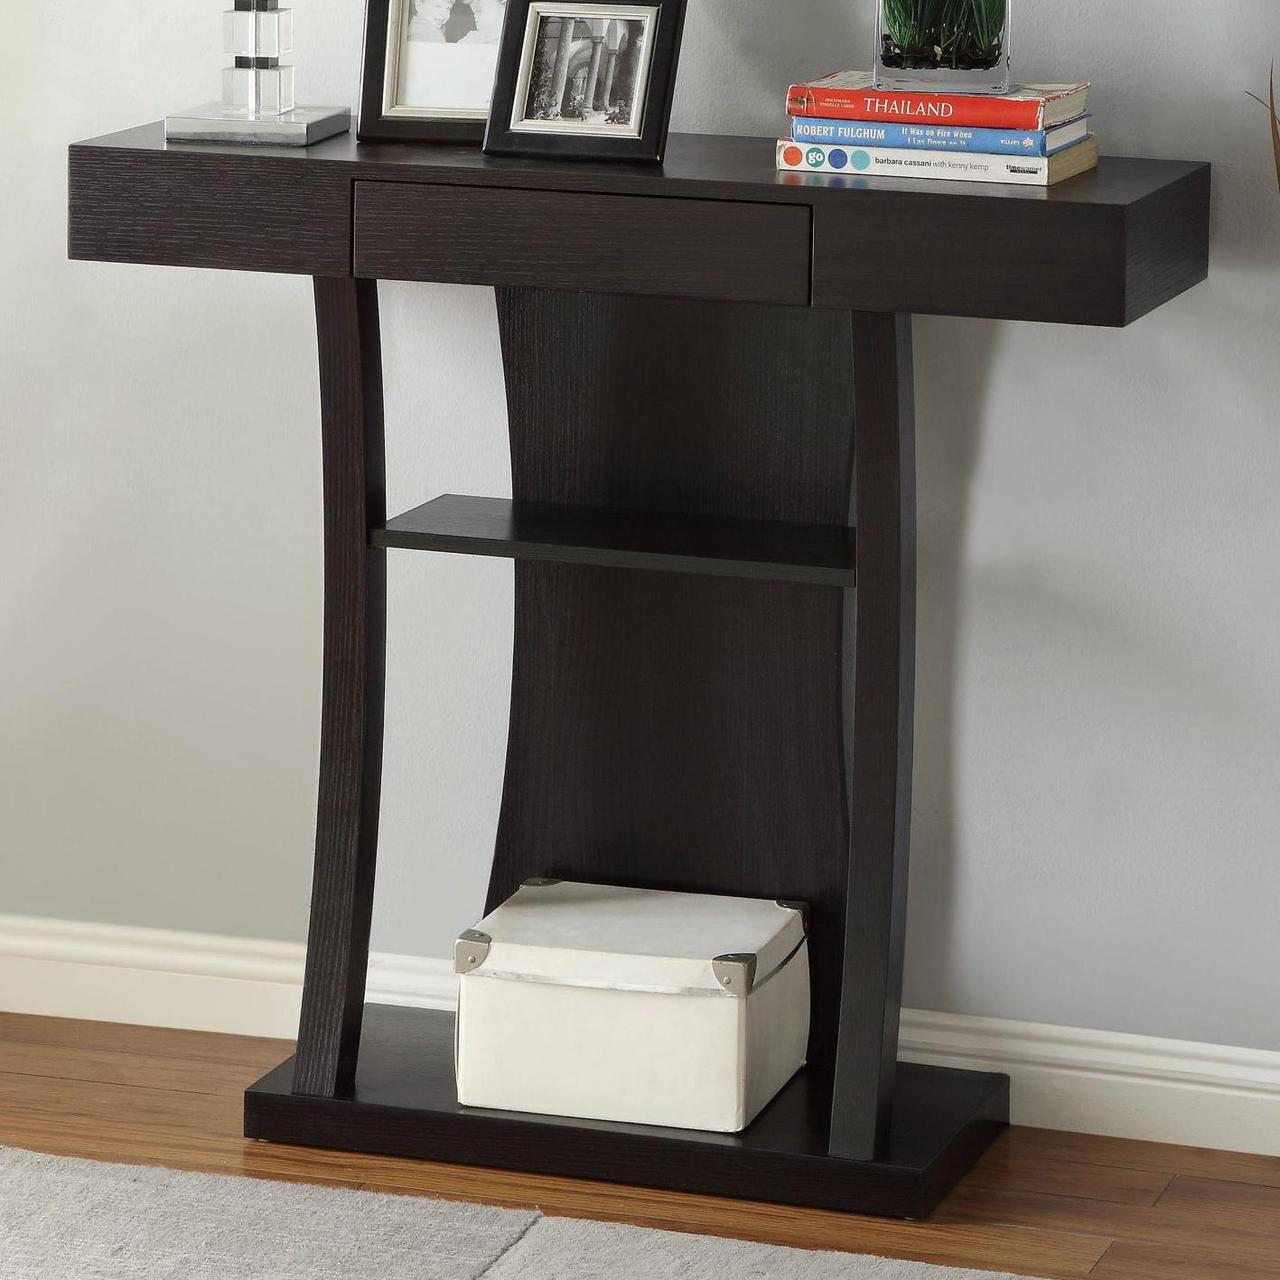 T-shaped Console Table W/2 Shelves